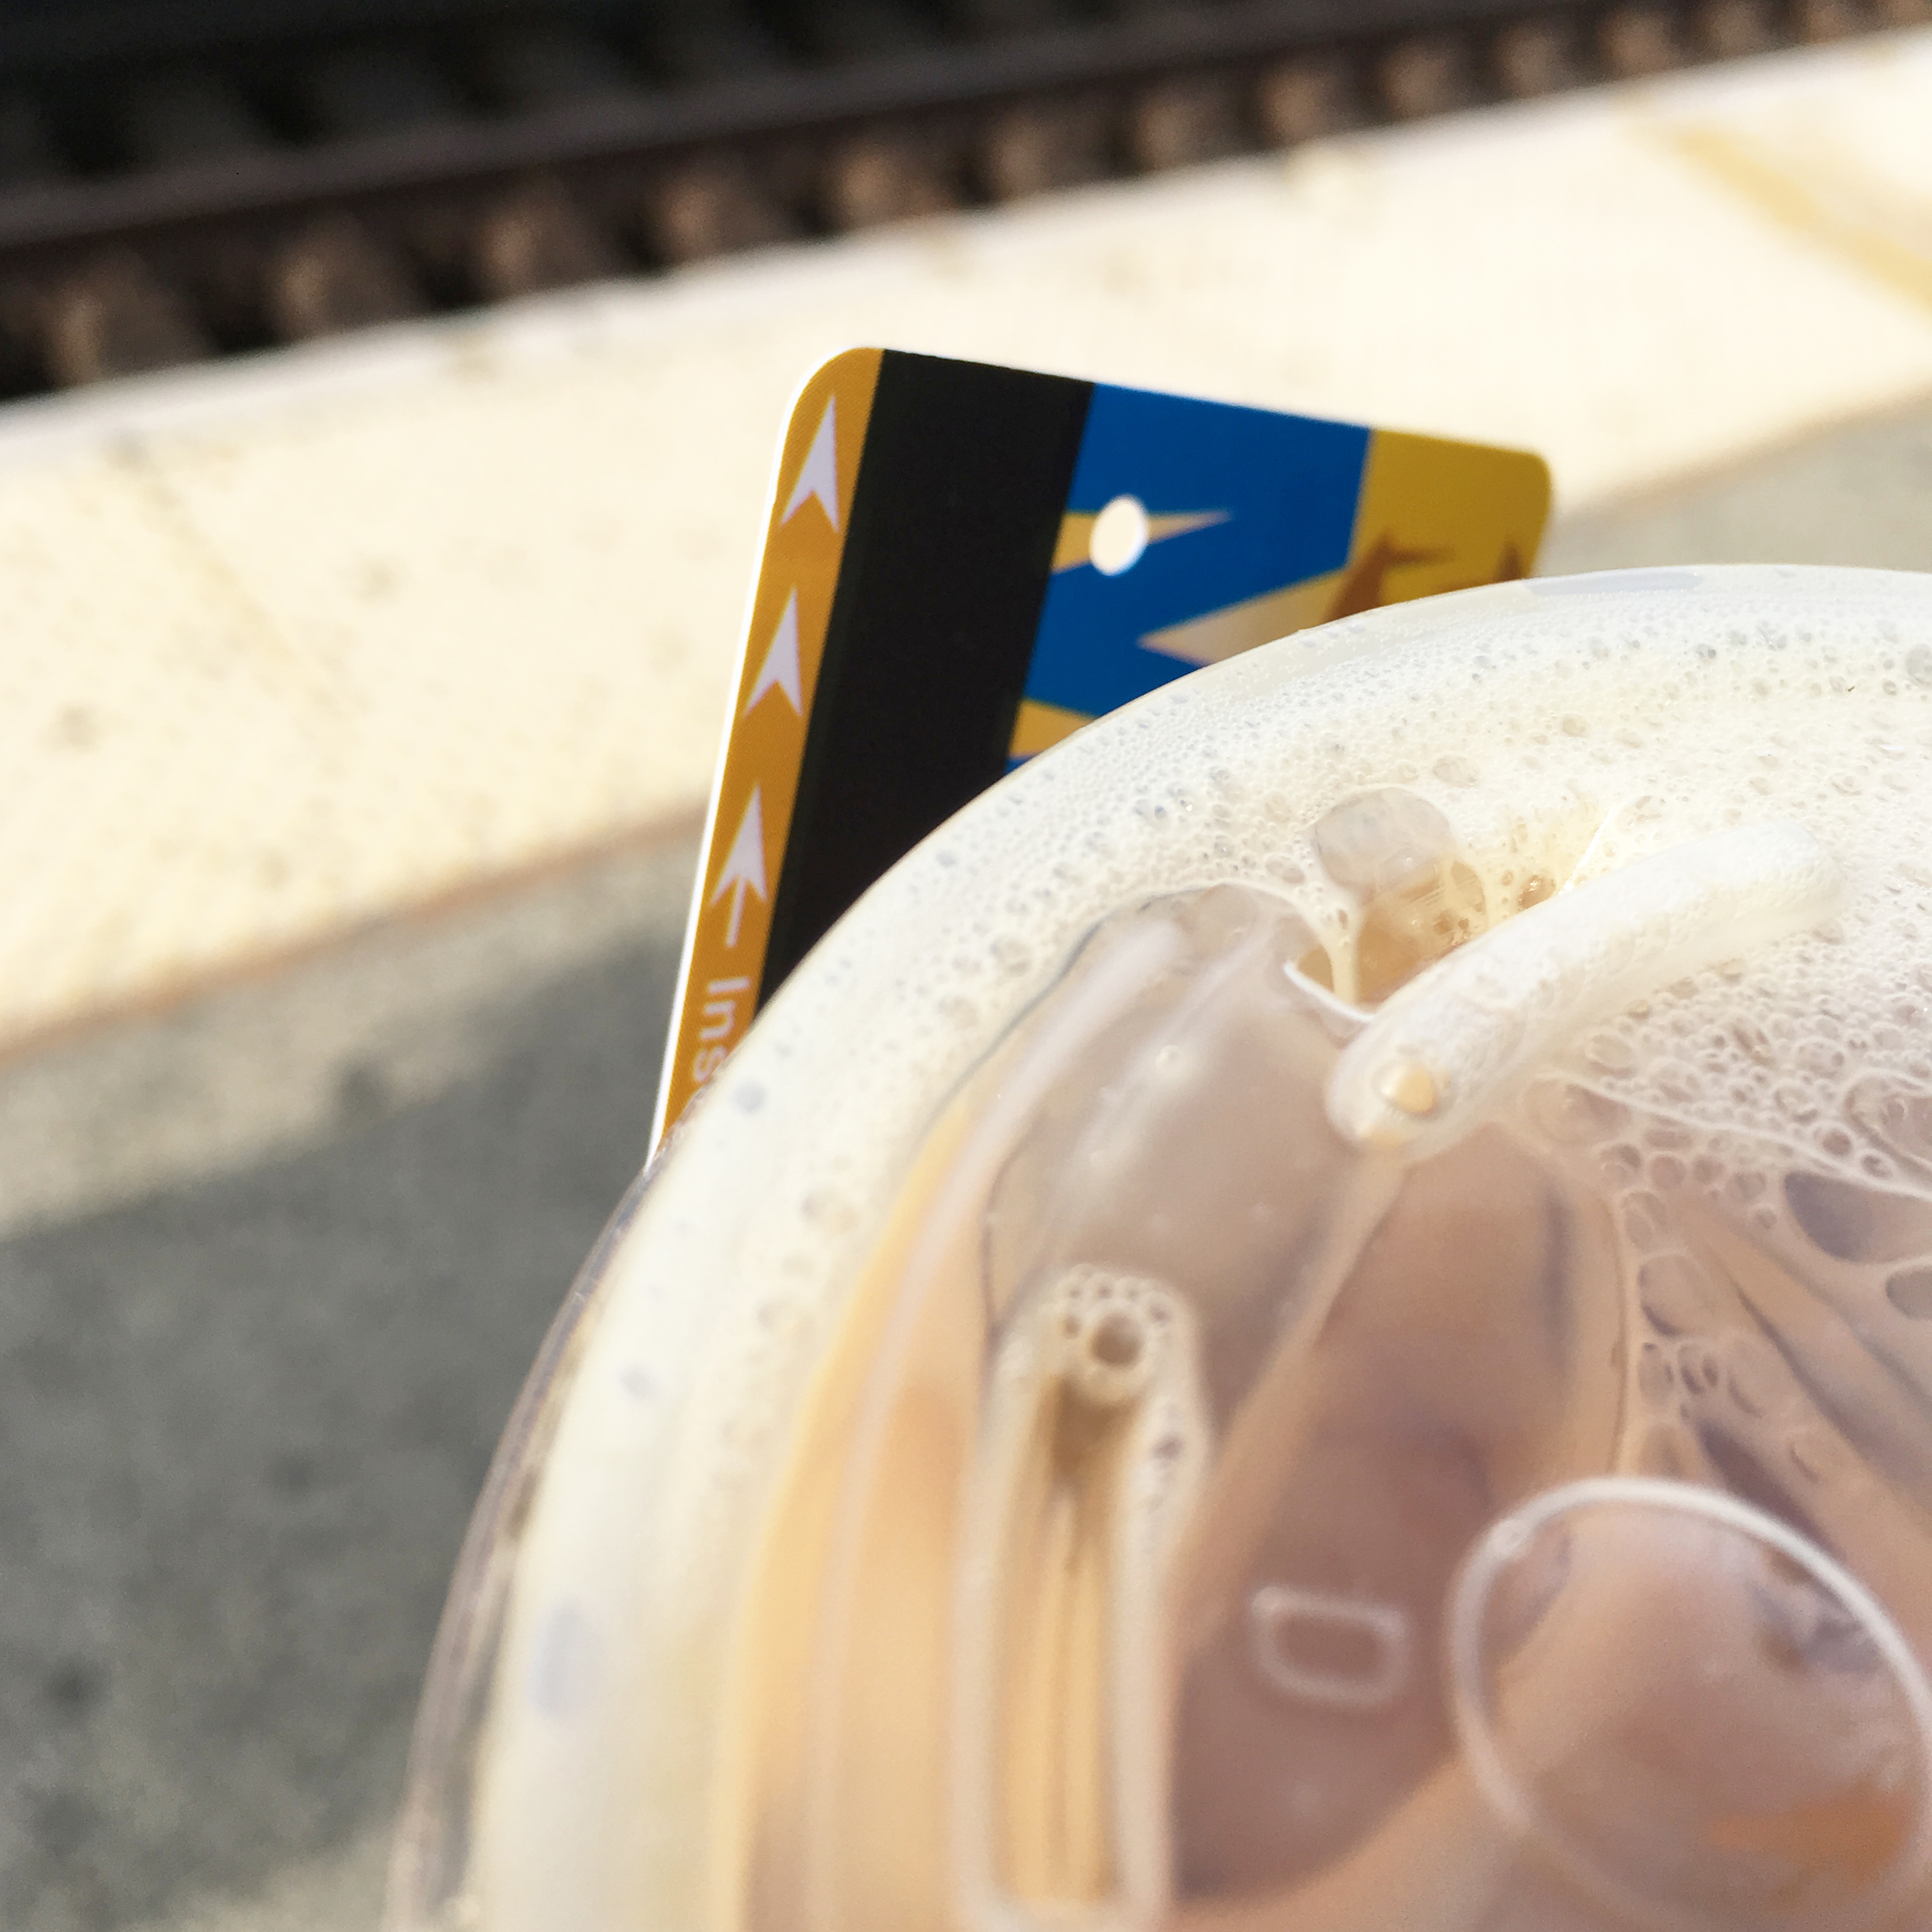 Coffee and metro card in hand - always on the go